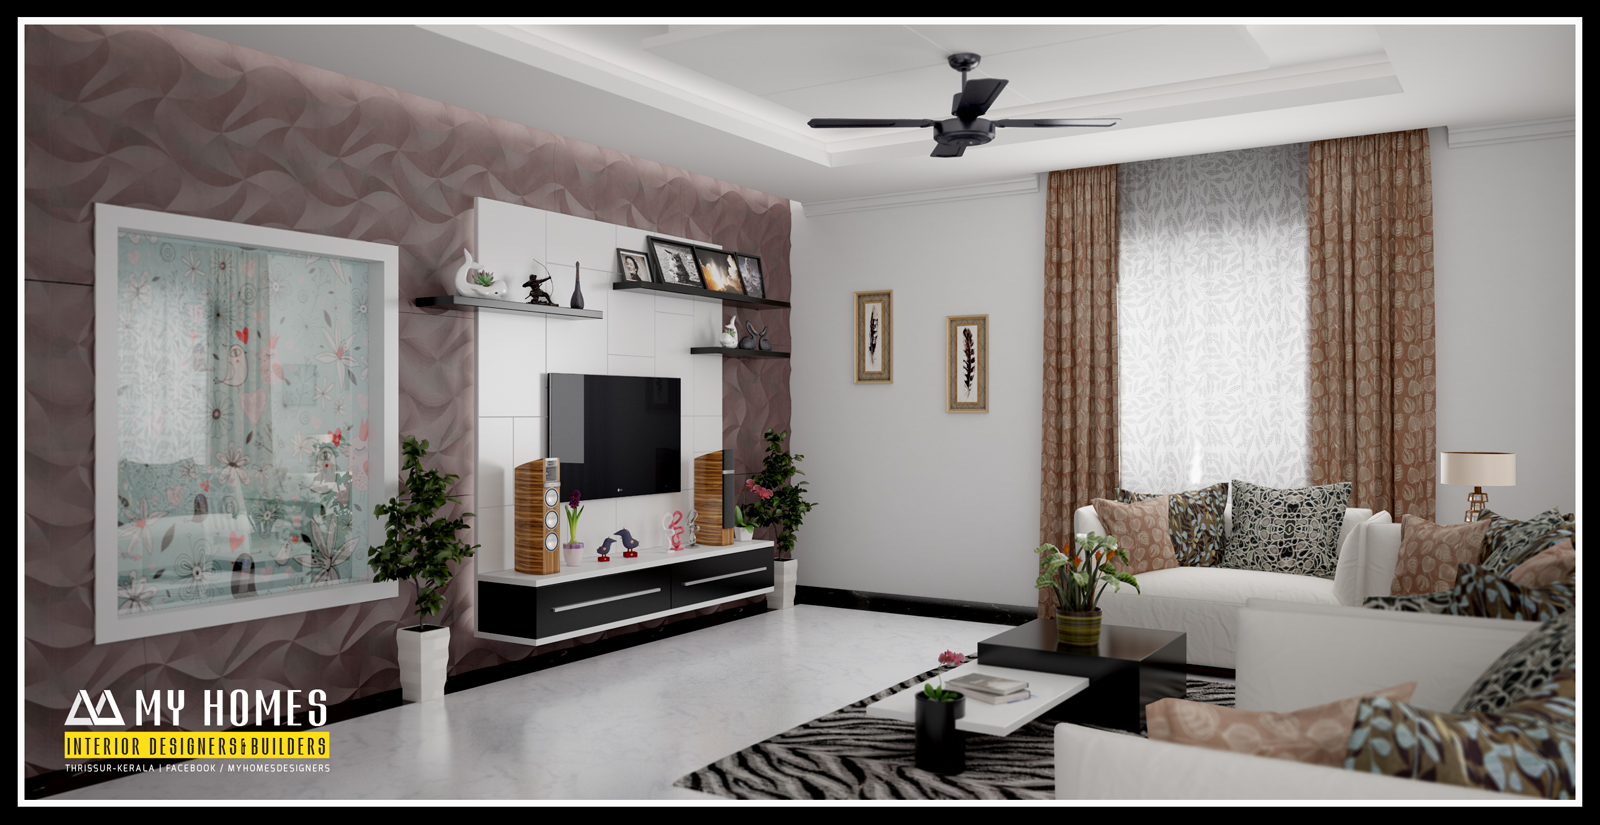 Kerala interior design ideas from designing company thrissur for Home interior decoration company